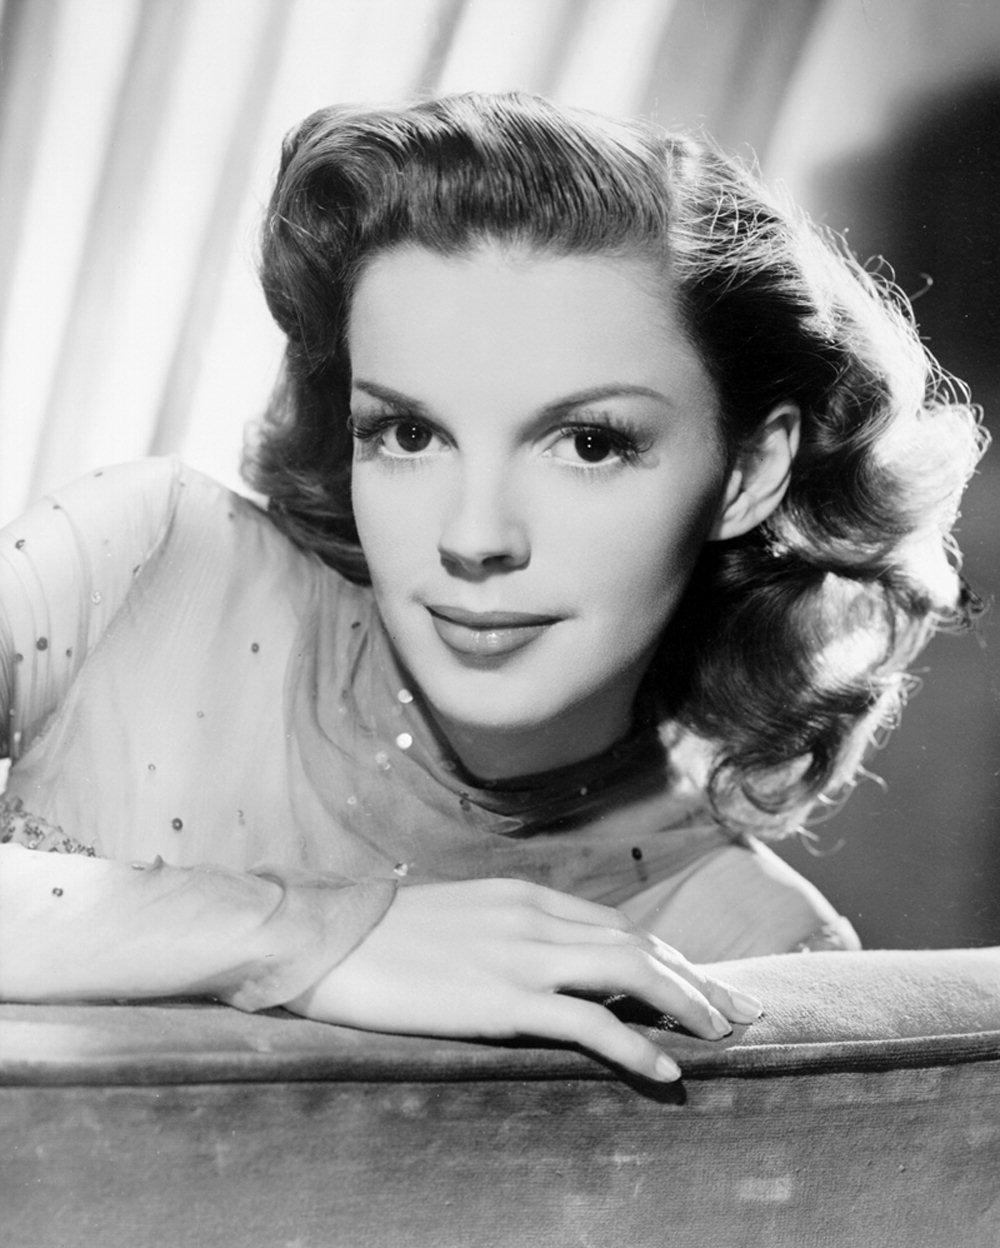 A publicity still of Judy Garland from MGM used for the promotion of The Harvey Girls | Source: Wikimedia Commons